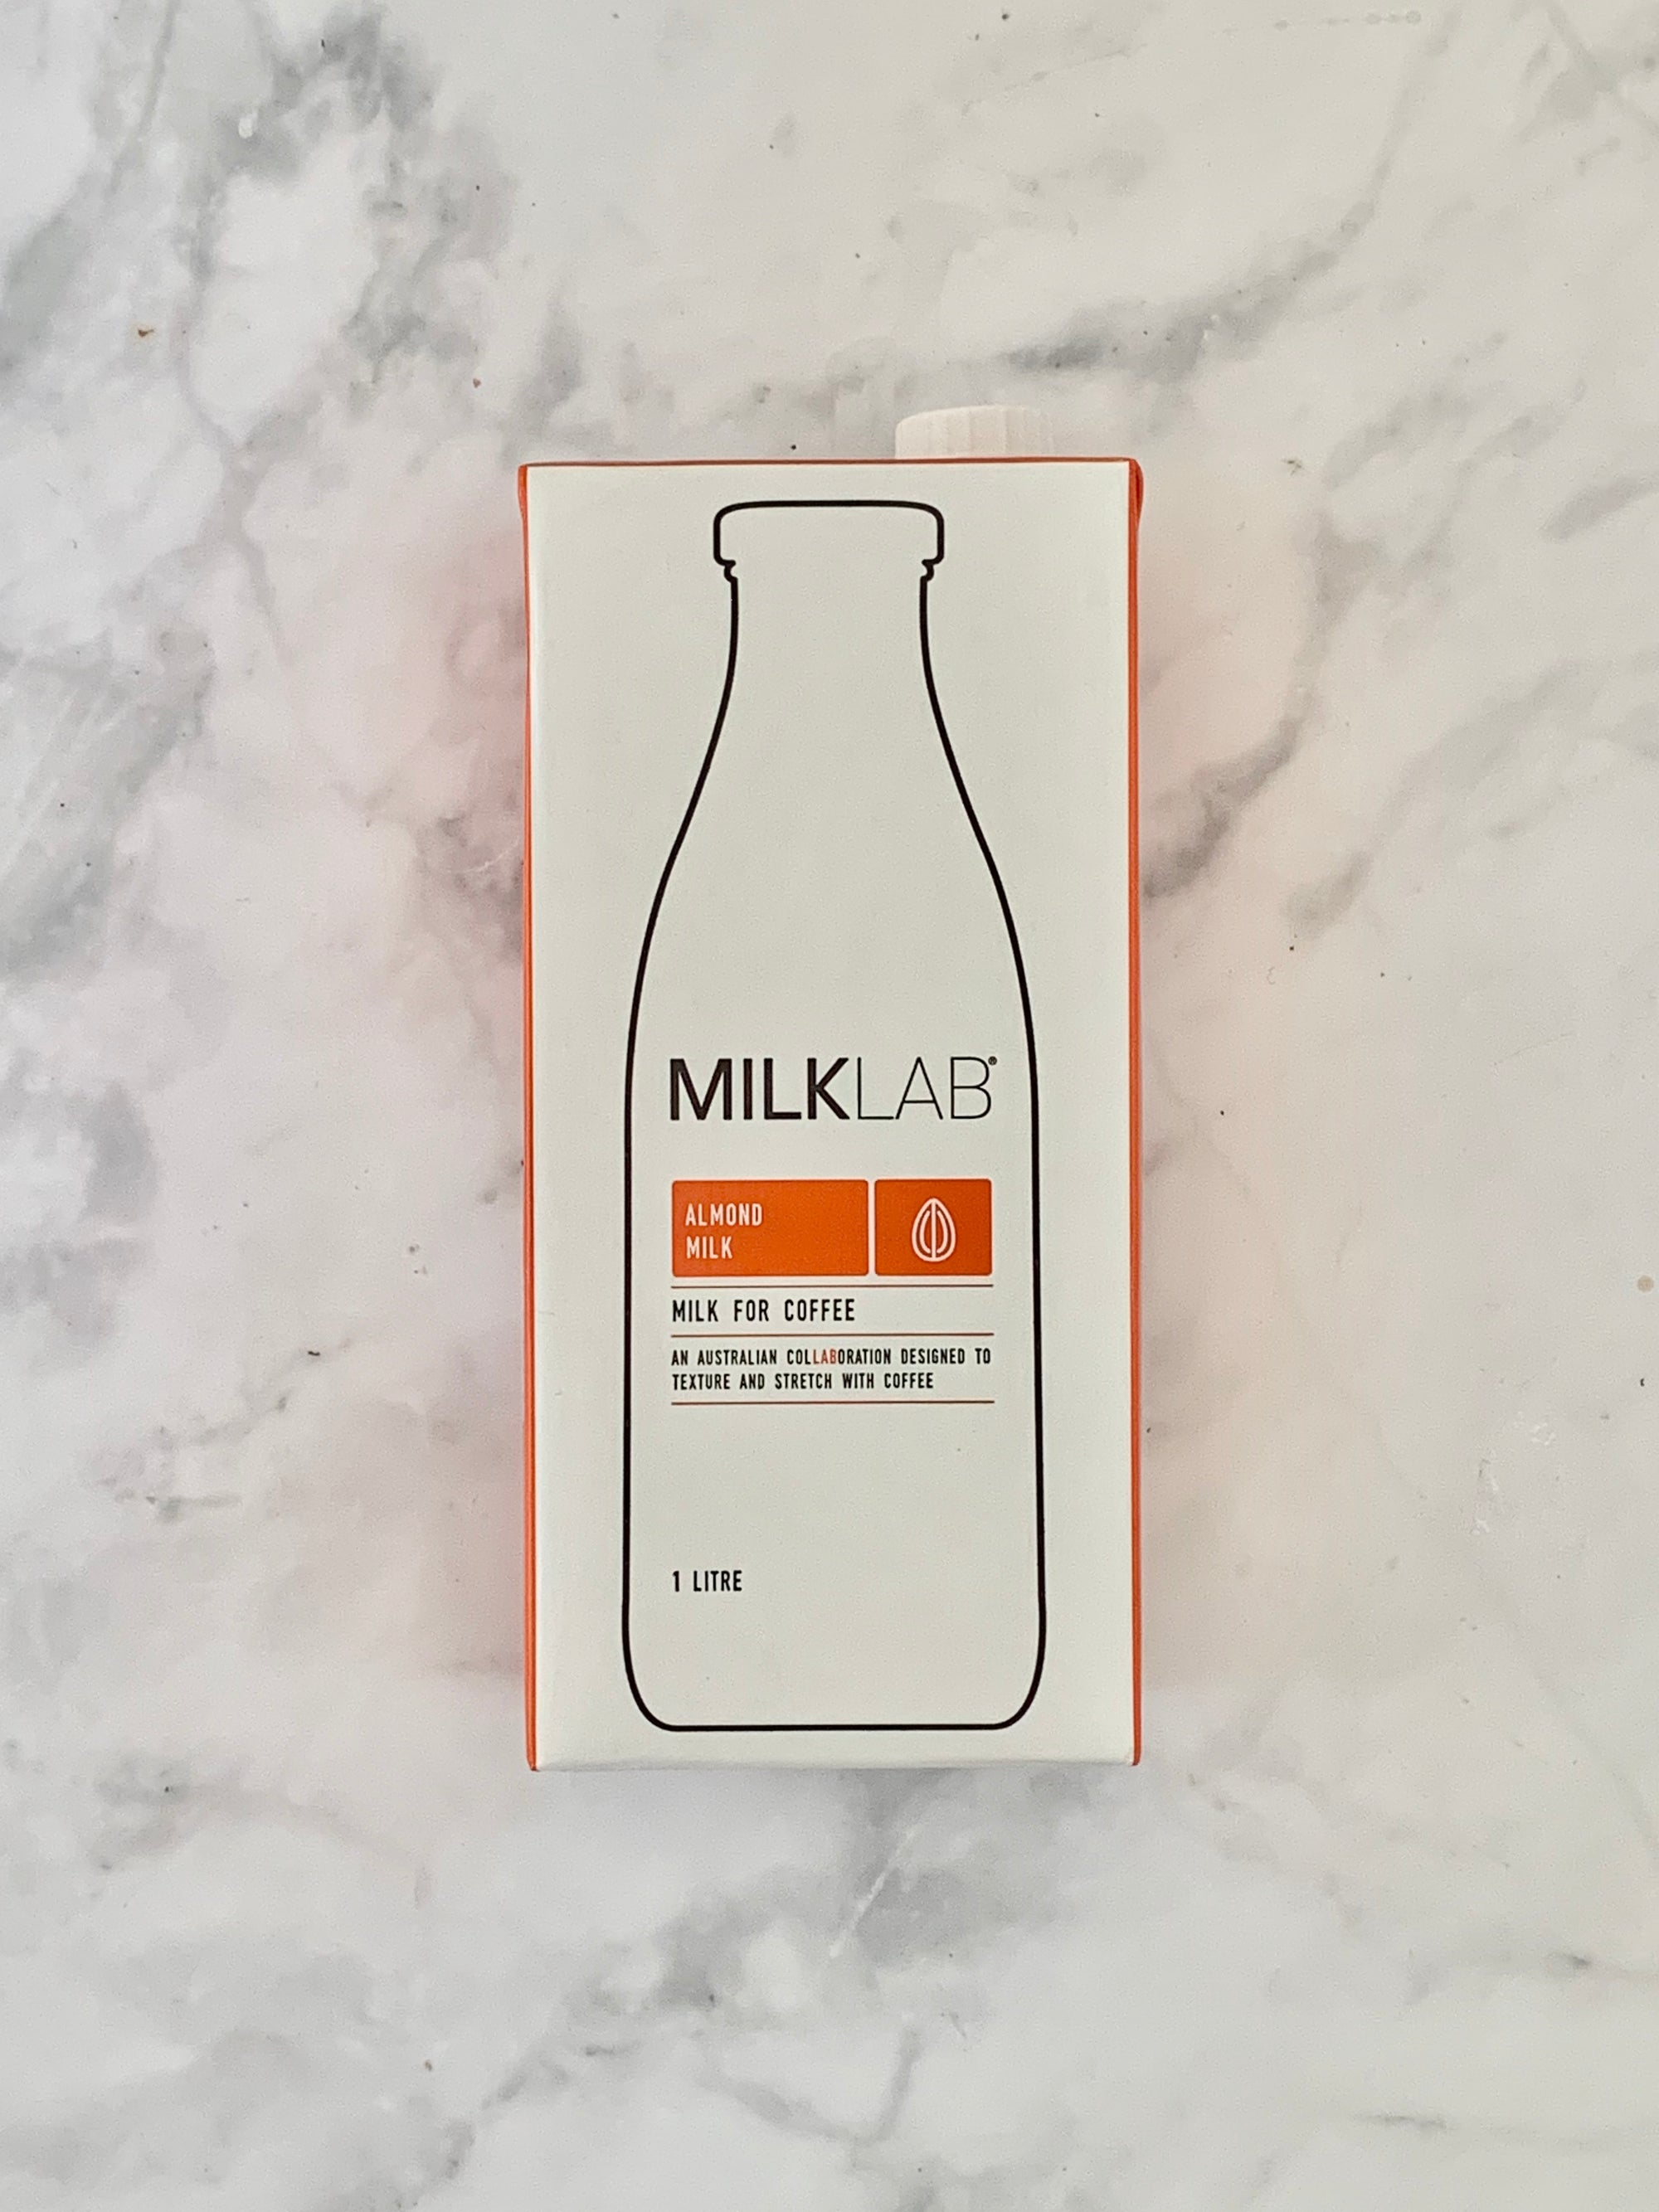 Milk Lab Almond Milk